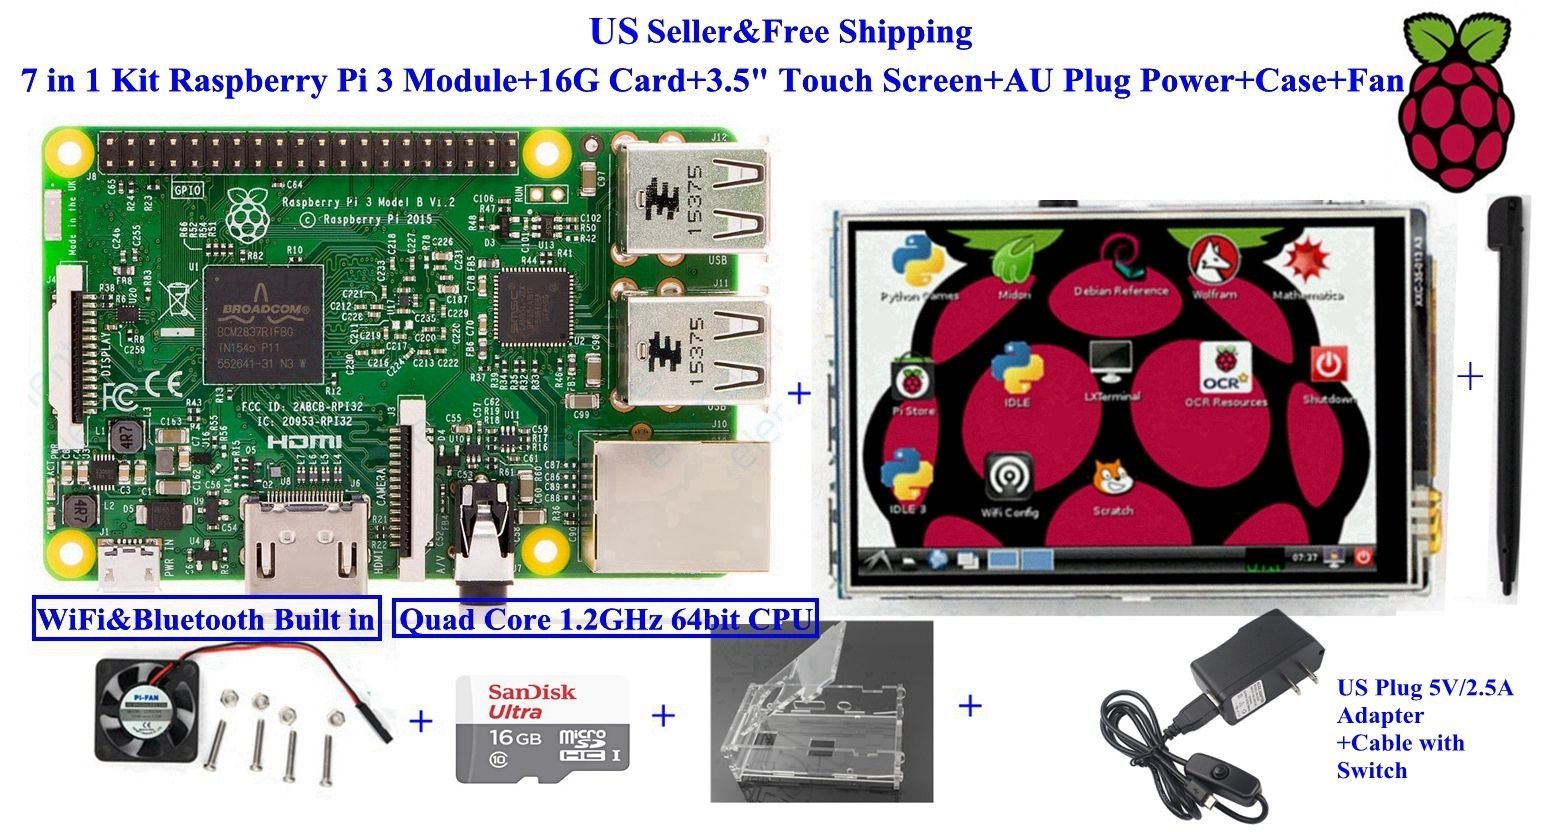 7 in 1 Kit Raspberry Pi 3 Module+16G Card+3.5'' Touch Screen+US Plug Power+Case by Generic (Image #1)